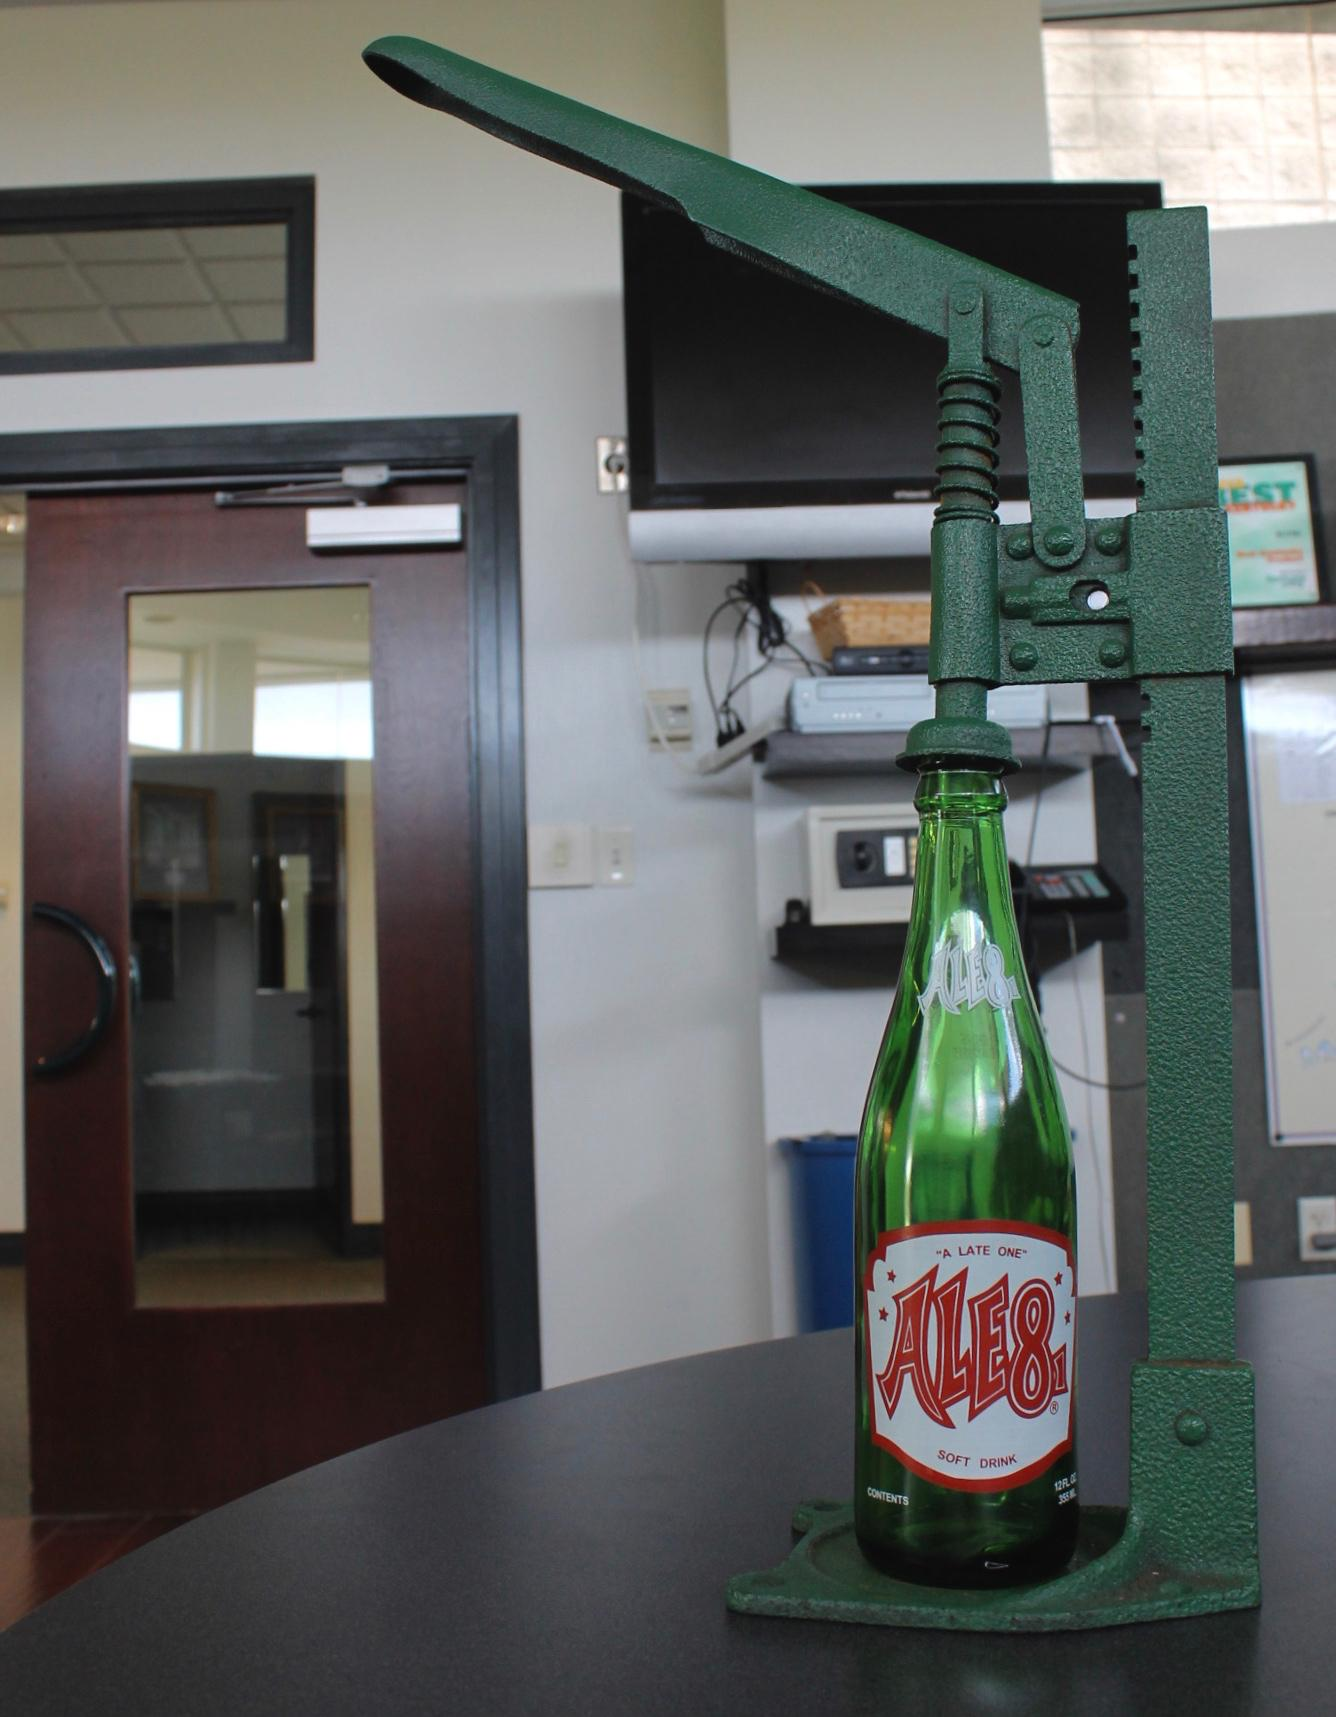 Ale-8-One, invented by G.L. Wainscott in Winchester, KY, was launched in 1926 and remains as the only soft drink invented in Kentucky that's still being made. The Ale-8-One Bottling Co. offers plant tours on Thursdays and Fridays to the public by reservation only. The drink can also be found in several counties throughout Kentucky, Ohio, and Indiana and also in every Cracker Barrel Old Country Store nationwide. The plant is approximately a 1.5-hour drive south of Cincinnati. ADDRESS: 25 Carol Rd., Winchester, KY (40391) / Image: Rose Brewington // Published: 9.19.17